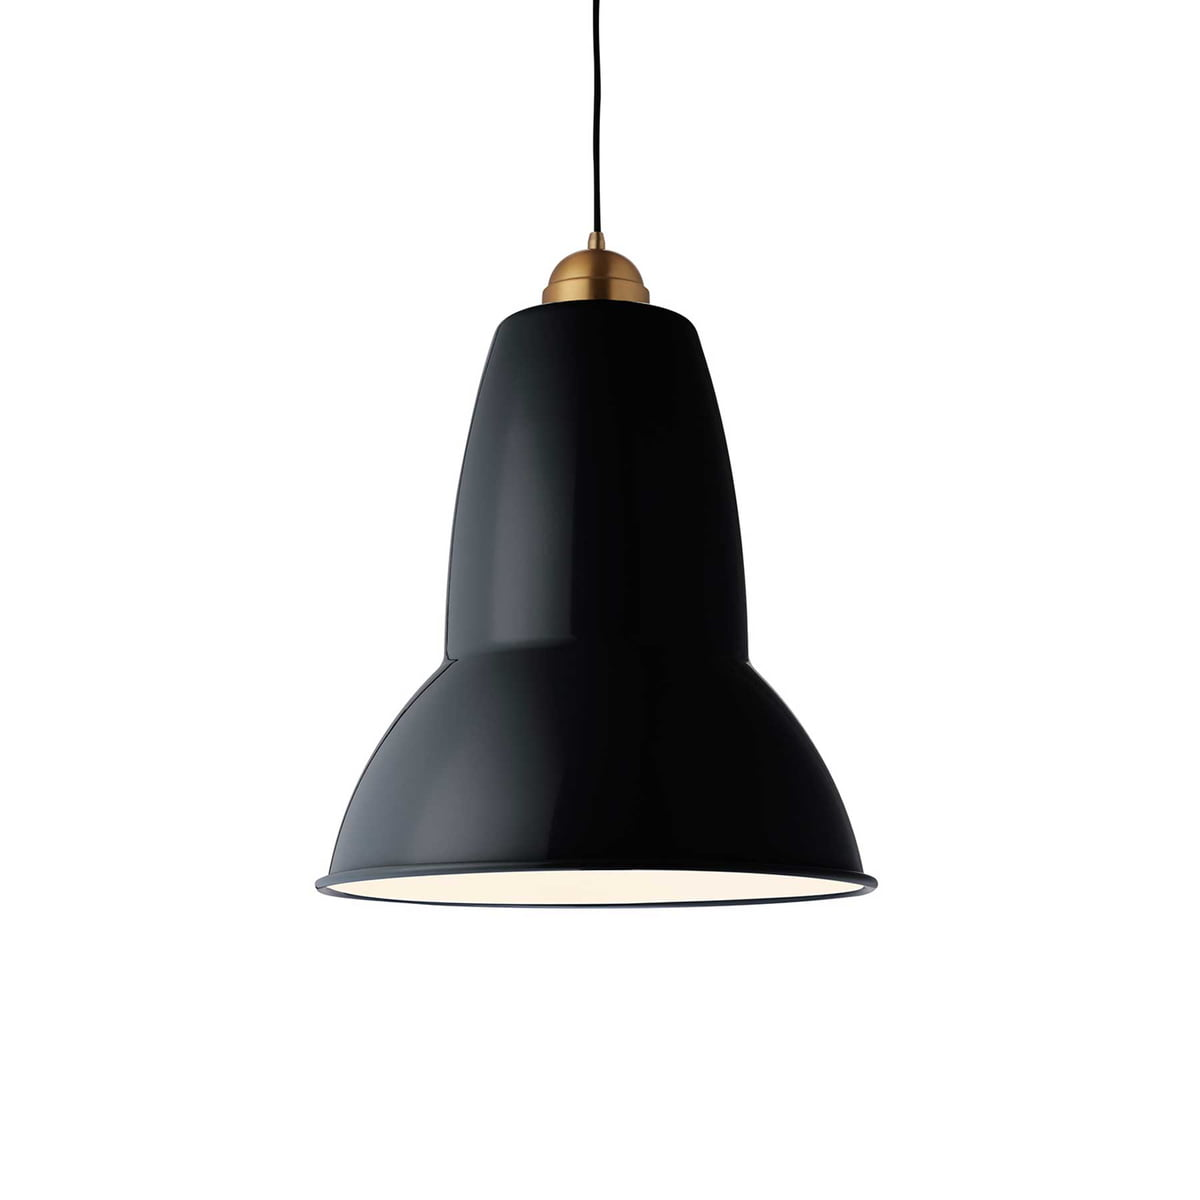 Original 1227 Giant Brass Pendant Lamp By Anglepoise